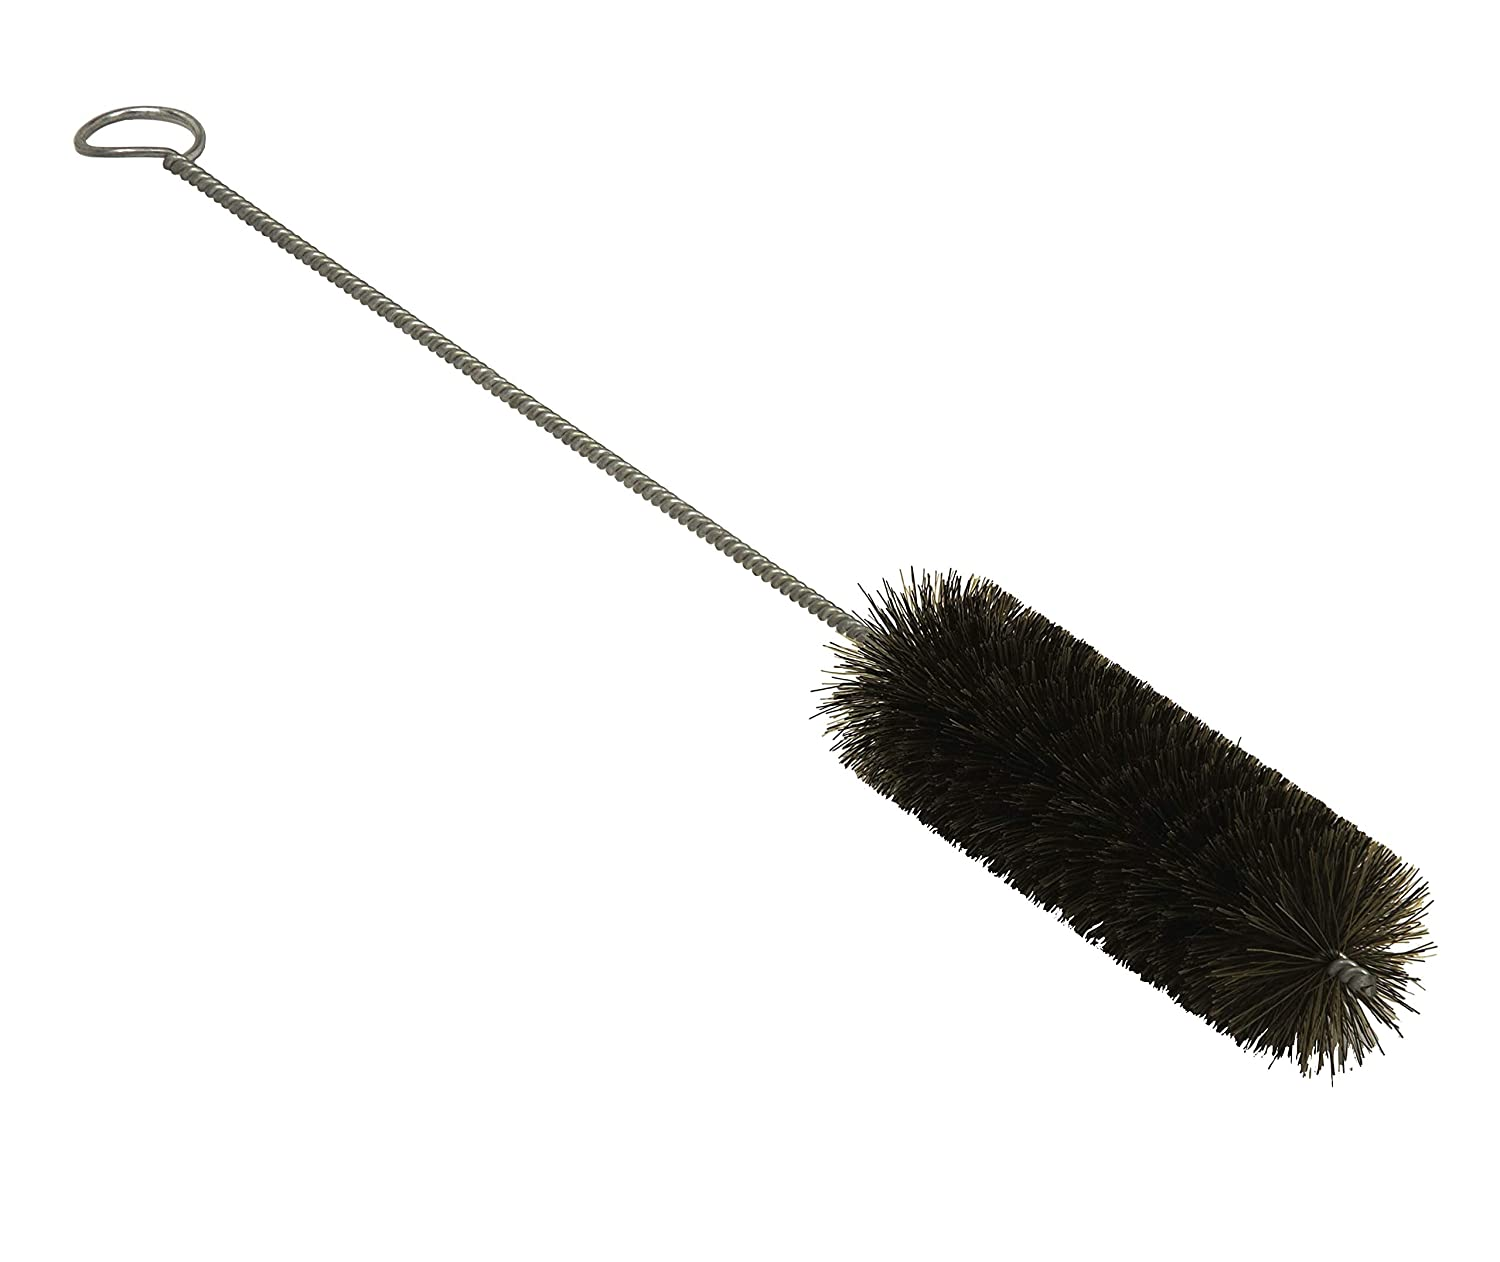 Tanis 06085 Cut Off Tip Bottle Cleaning Brush, Horse Hair Bristle, 1